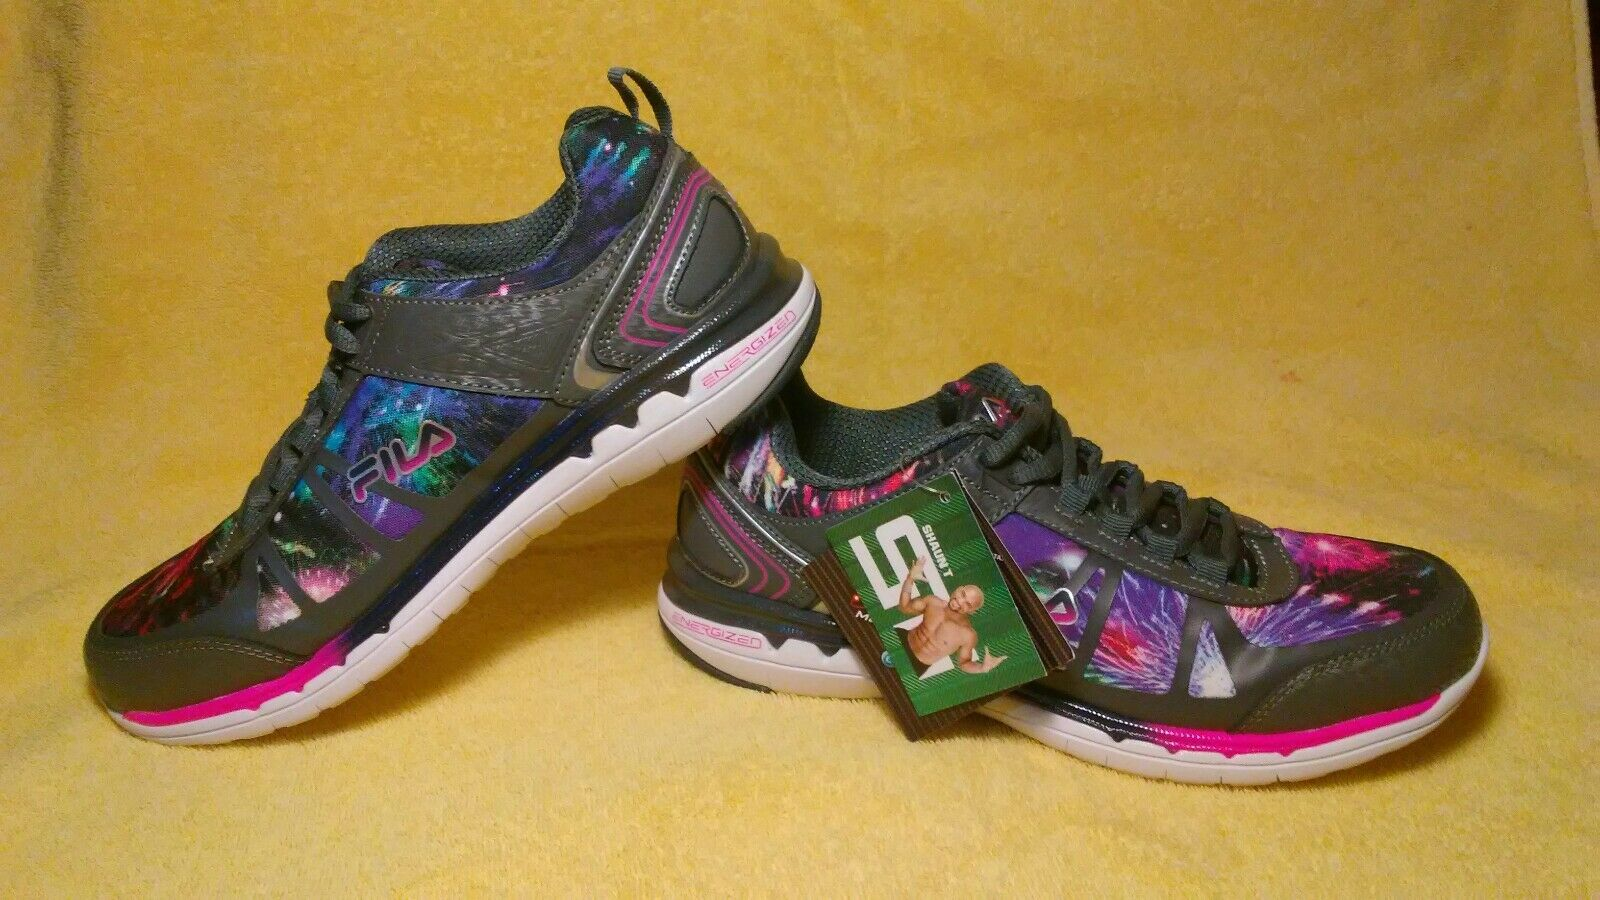 SUPER SWEET!! Special Edition Price reduction FILA Womens shoes - NWOB - RETAIL Price reduction Seasonal clearance sale